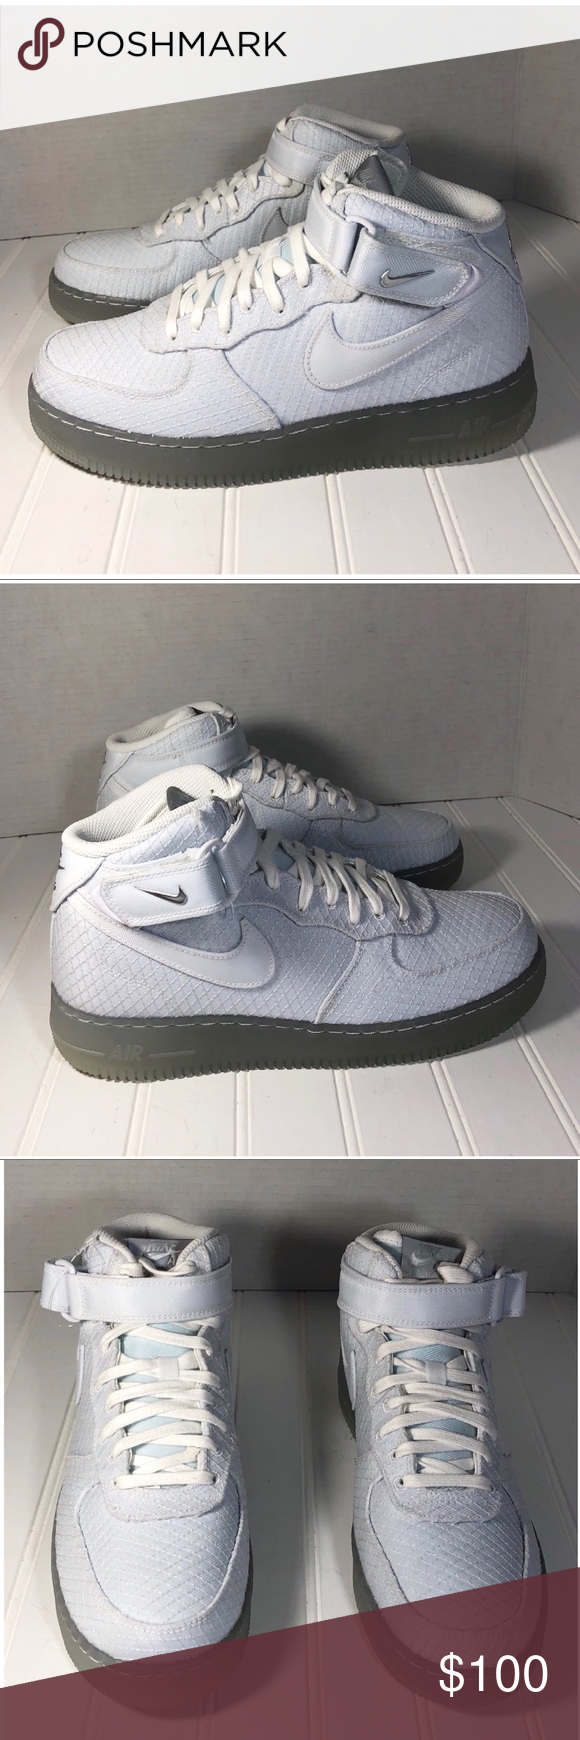 premium selection d5ff0 4e255 Nike Metallic Silver Air Force 1 Mid LV8 Size 8 New without box Air Force 1  Mid  07 LV8 Style ID  804609-102 Brand  Nike Color  White Metallic Silver  Size  ...